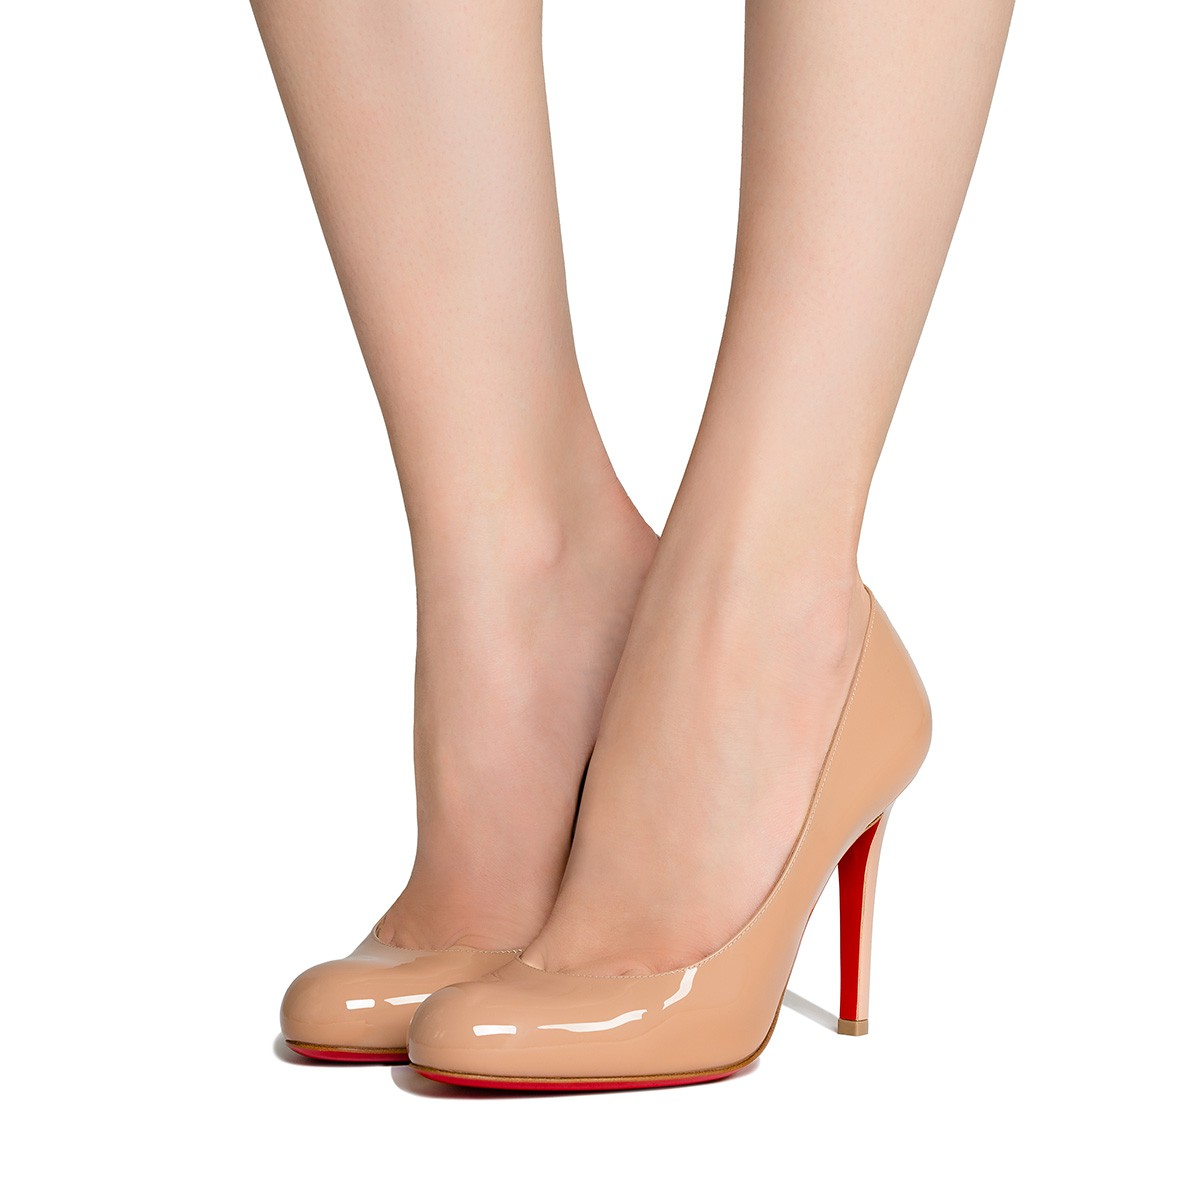 60480112133 SIMPLE PUMP 100 Nude Patent calfskin - Women Shoes - Christian Louboutin